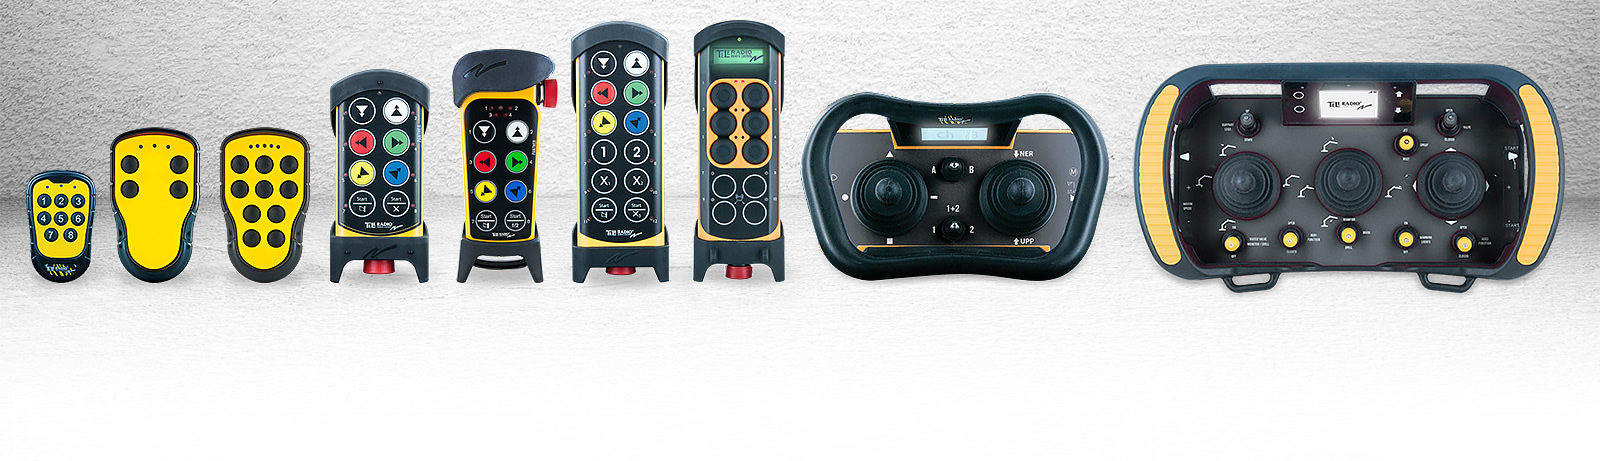 Safe radio remote control - Tele Radio | We offer wireless ... on